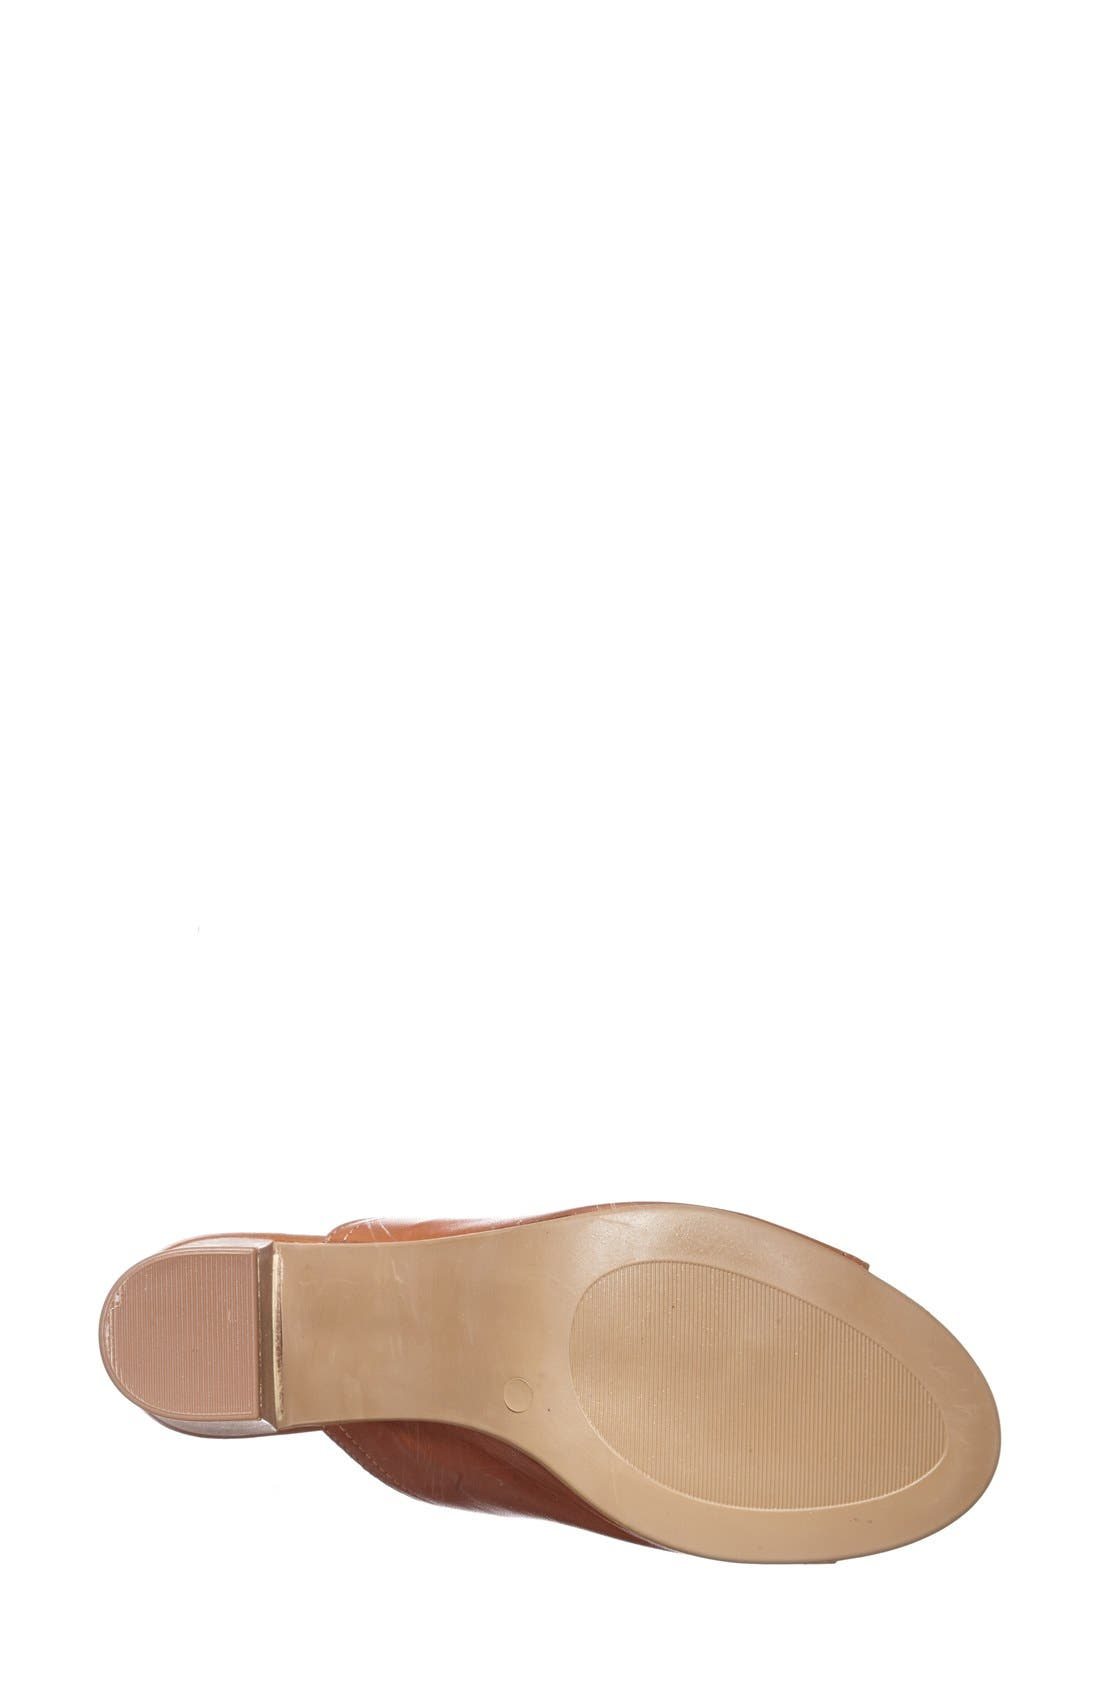 'Arno' Leather Mule,                             Alternate thumbnail 7, color,